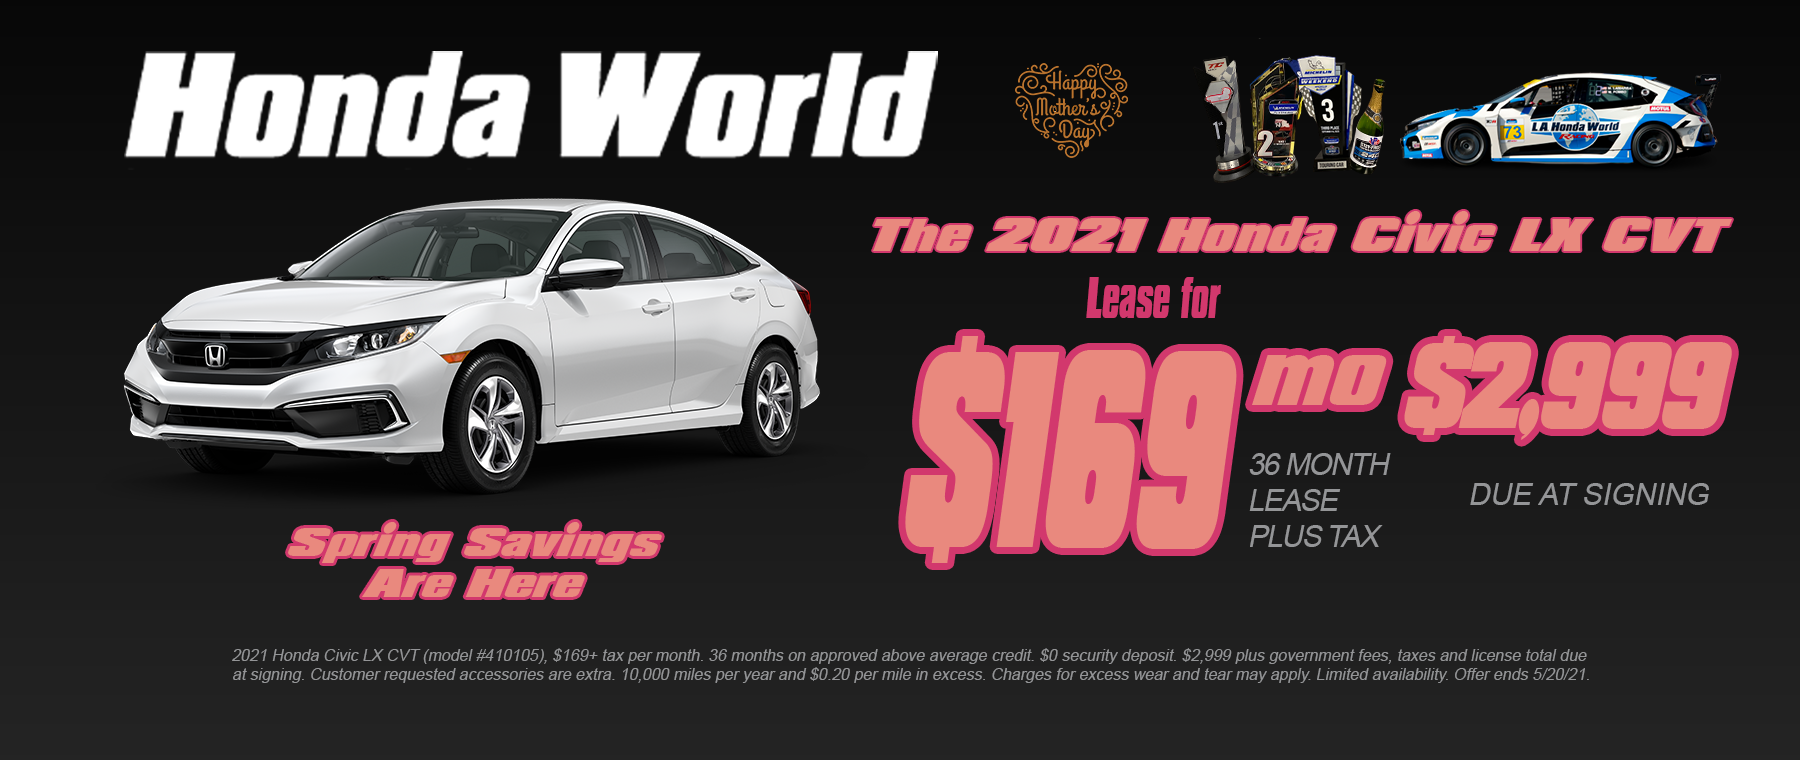 Honda Civic Lease Offer Los Angeles